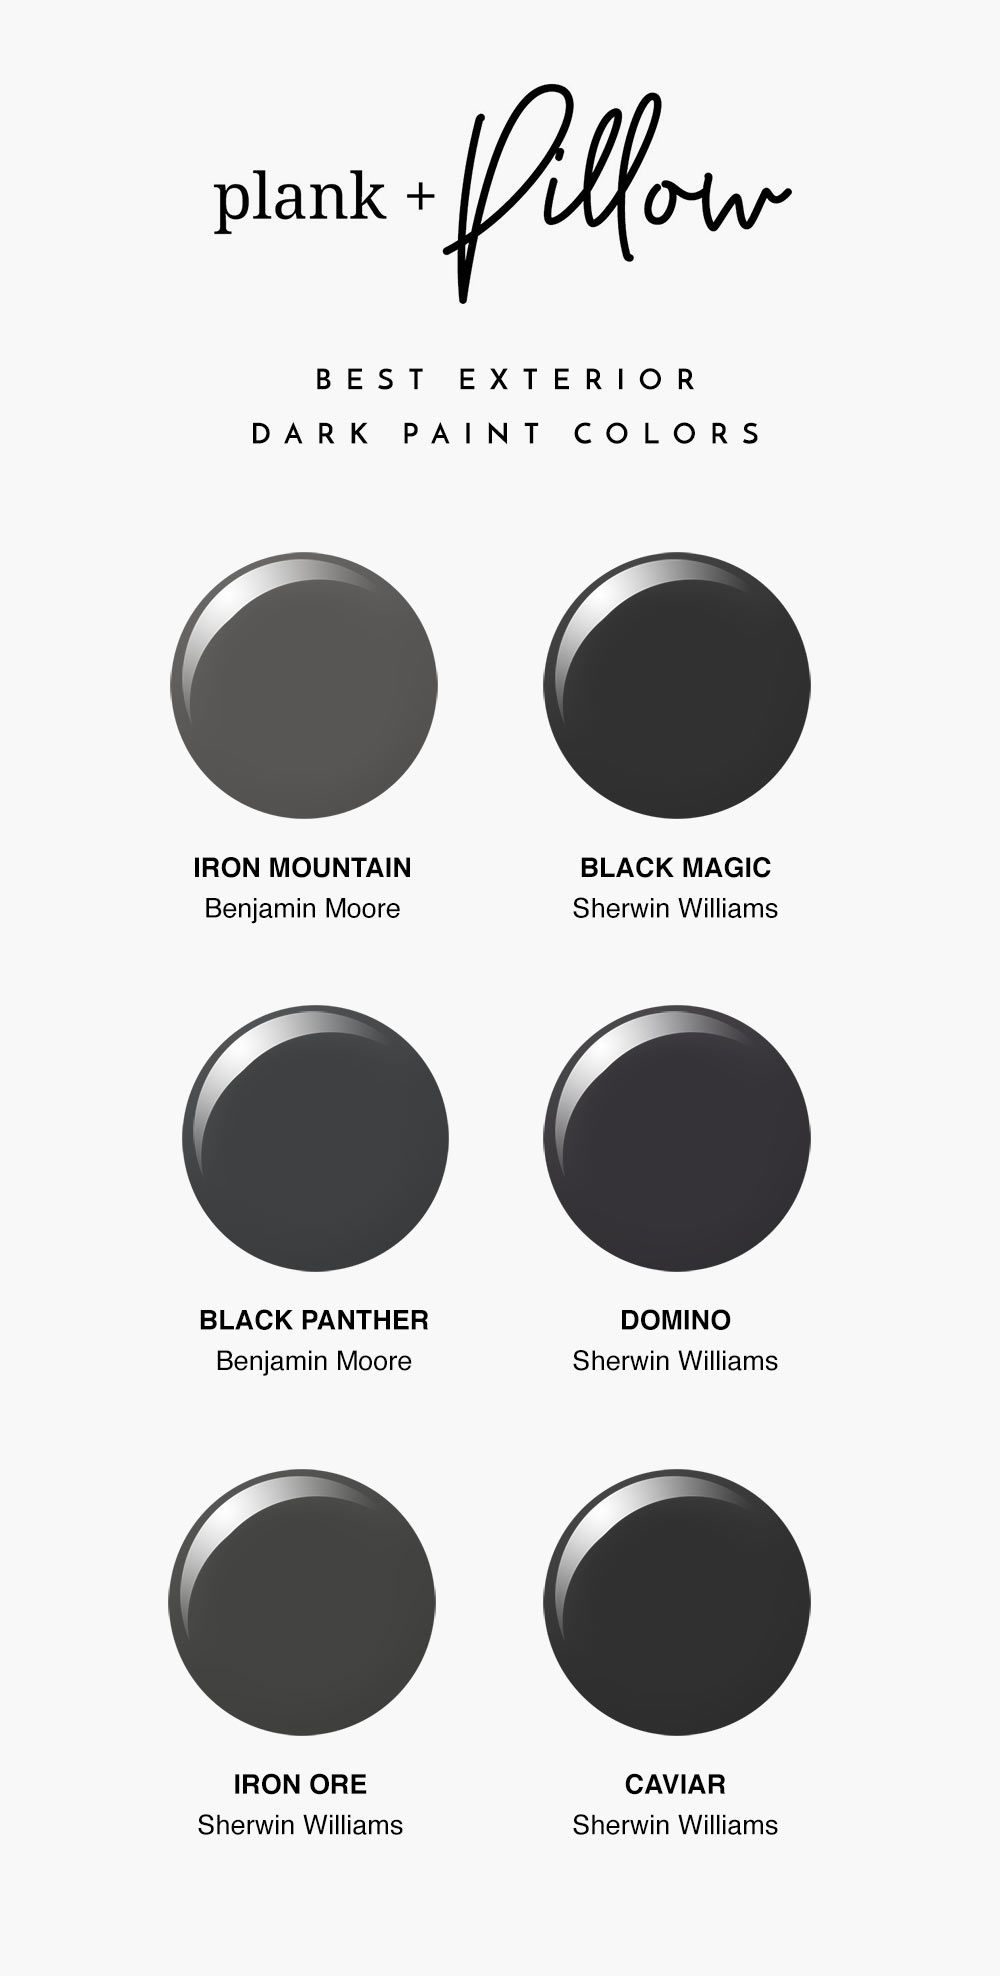 Our Top Picks For Dark Exterior Paint Colors My Current Favorites Are Sherwin Williams Iron Ore An Exterior Paint Colors Dark Paint Colors Exterior Gray Paint